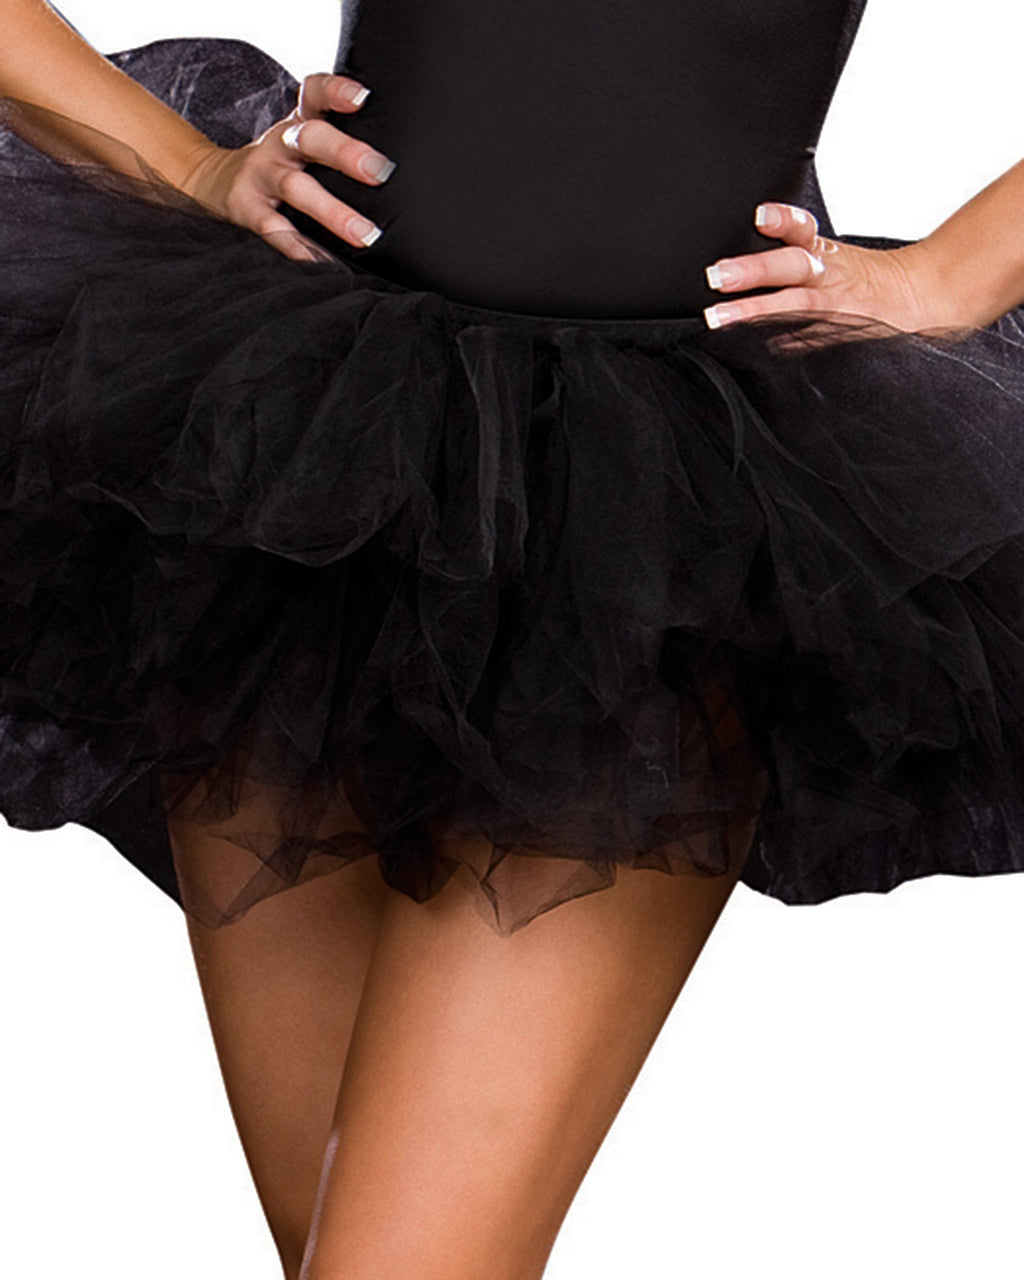 Tutu Petticoat Costume Accessory Dreamgirl Costume One Size Black